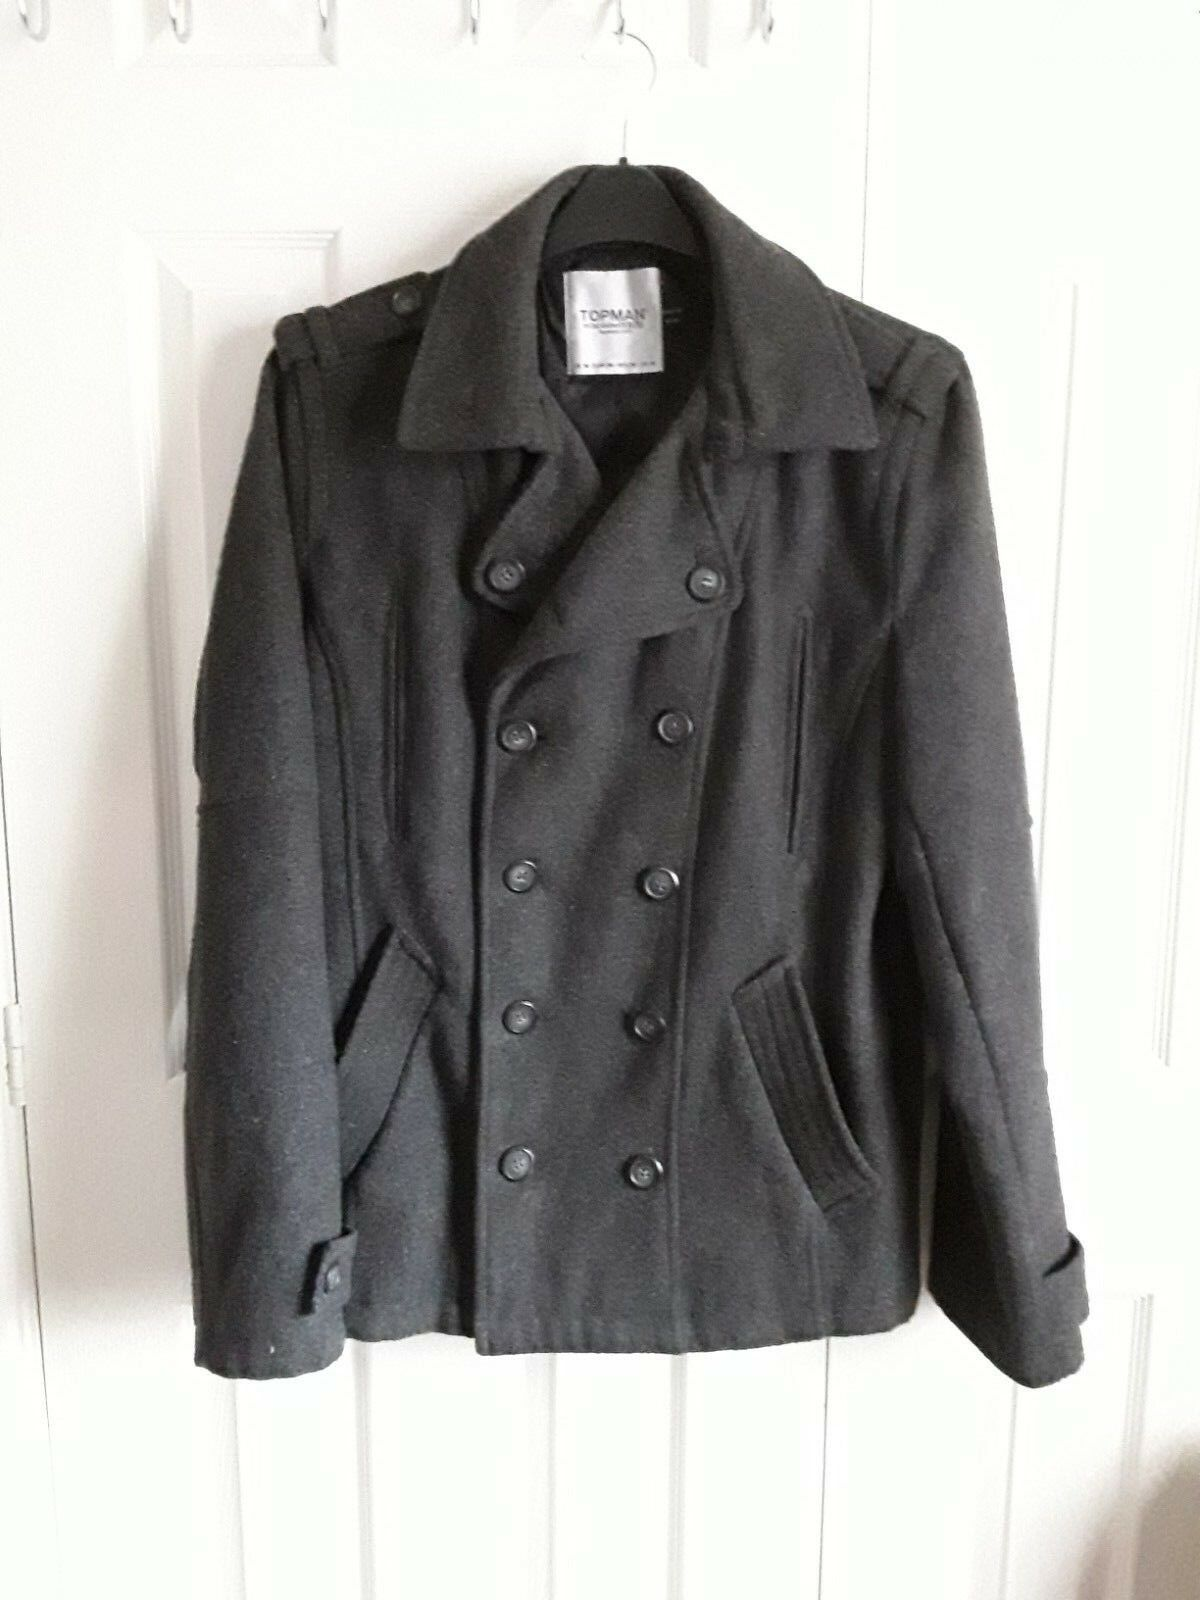 Topman double breasted coat size M